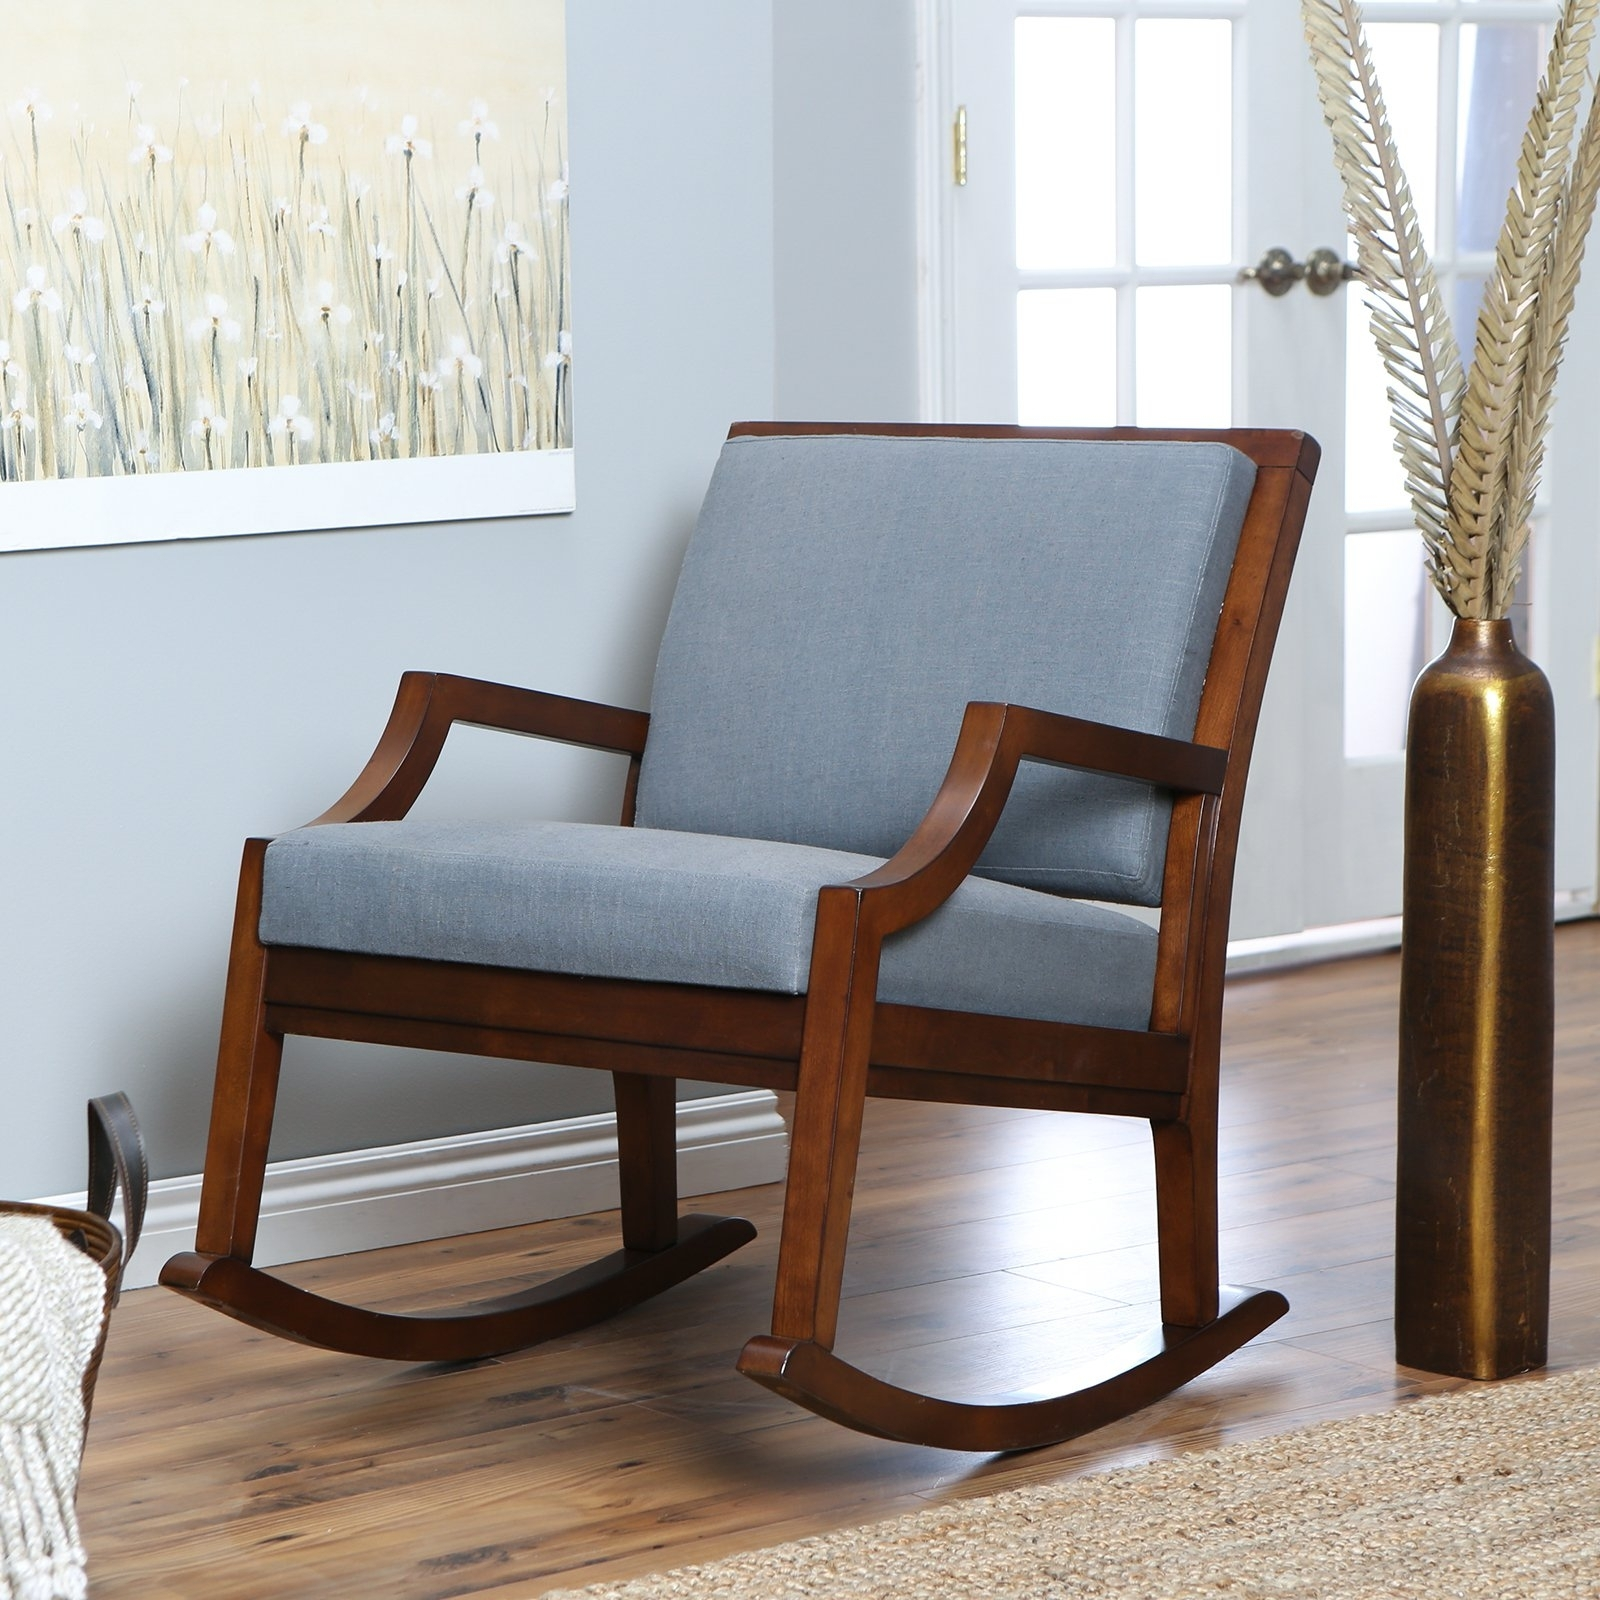 Rocking Chairs With Cushions Throughout Latest Brown Wooden Indoor Rocking Chairs With Blue Cushions Set On (View 11 of 20)